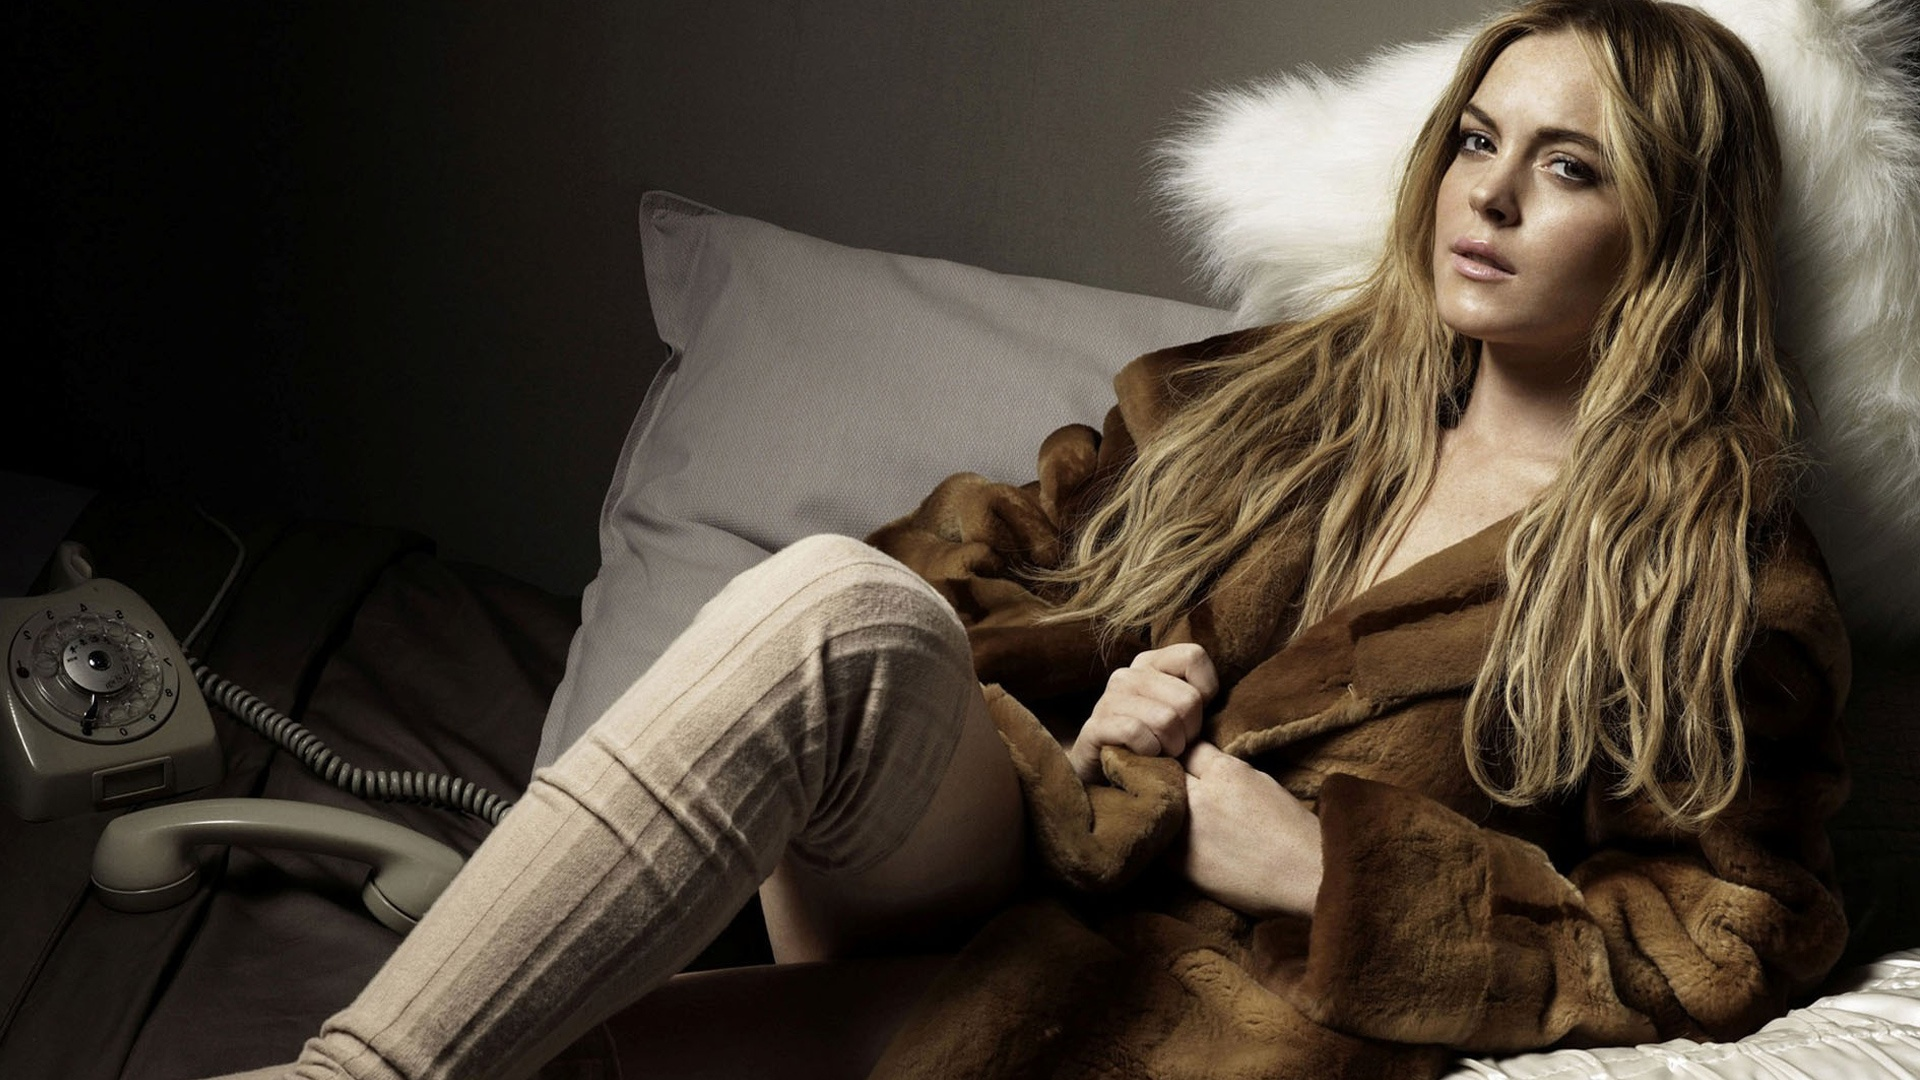 lindsay lohan wallpapers in jpg format for free download